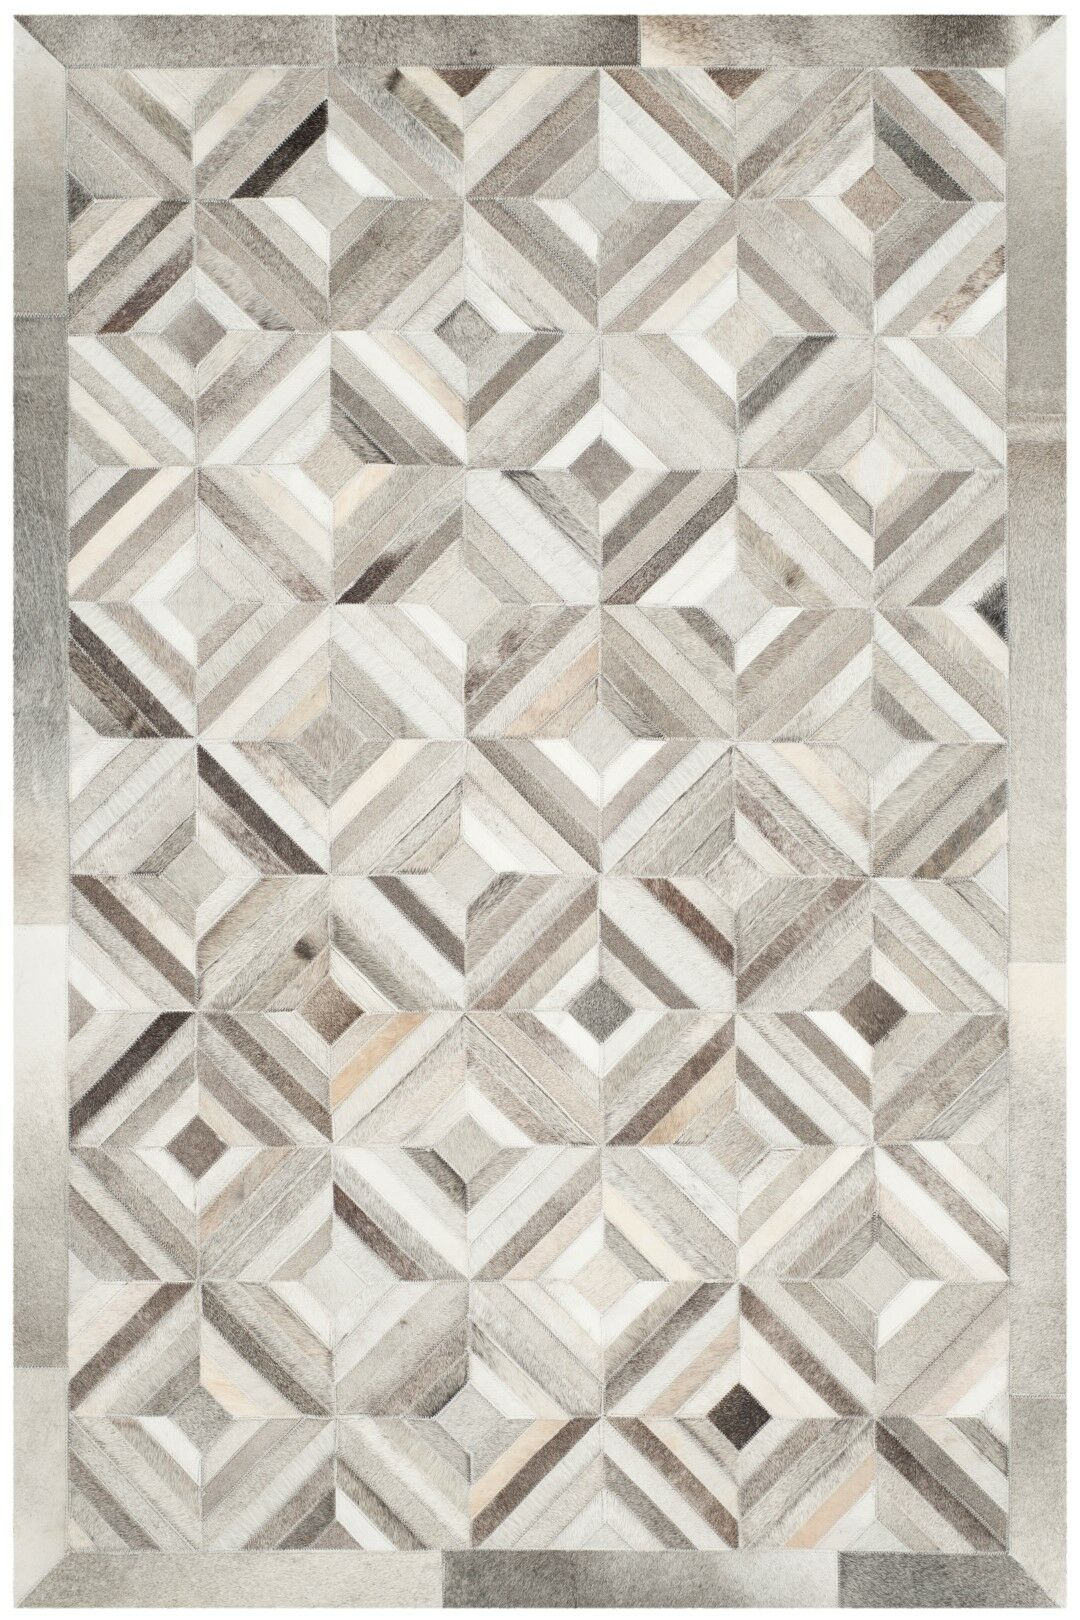 Cartwright Hand-Woven Gray Area Rug Rug Size: Rectangle 3' x 5'